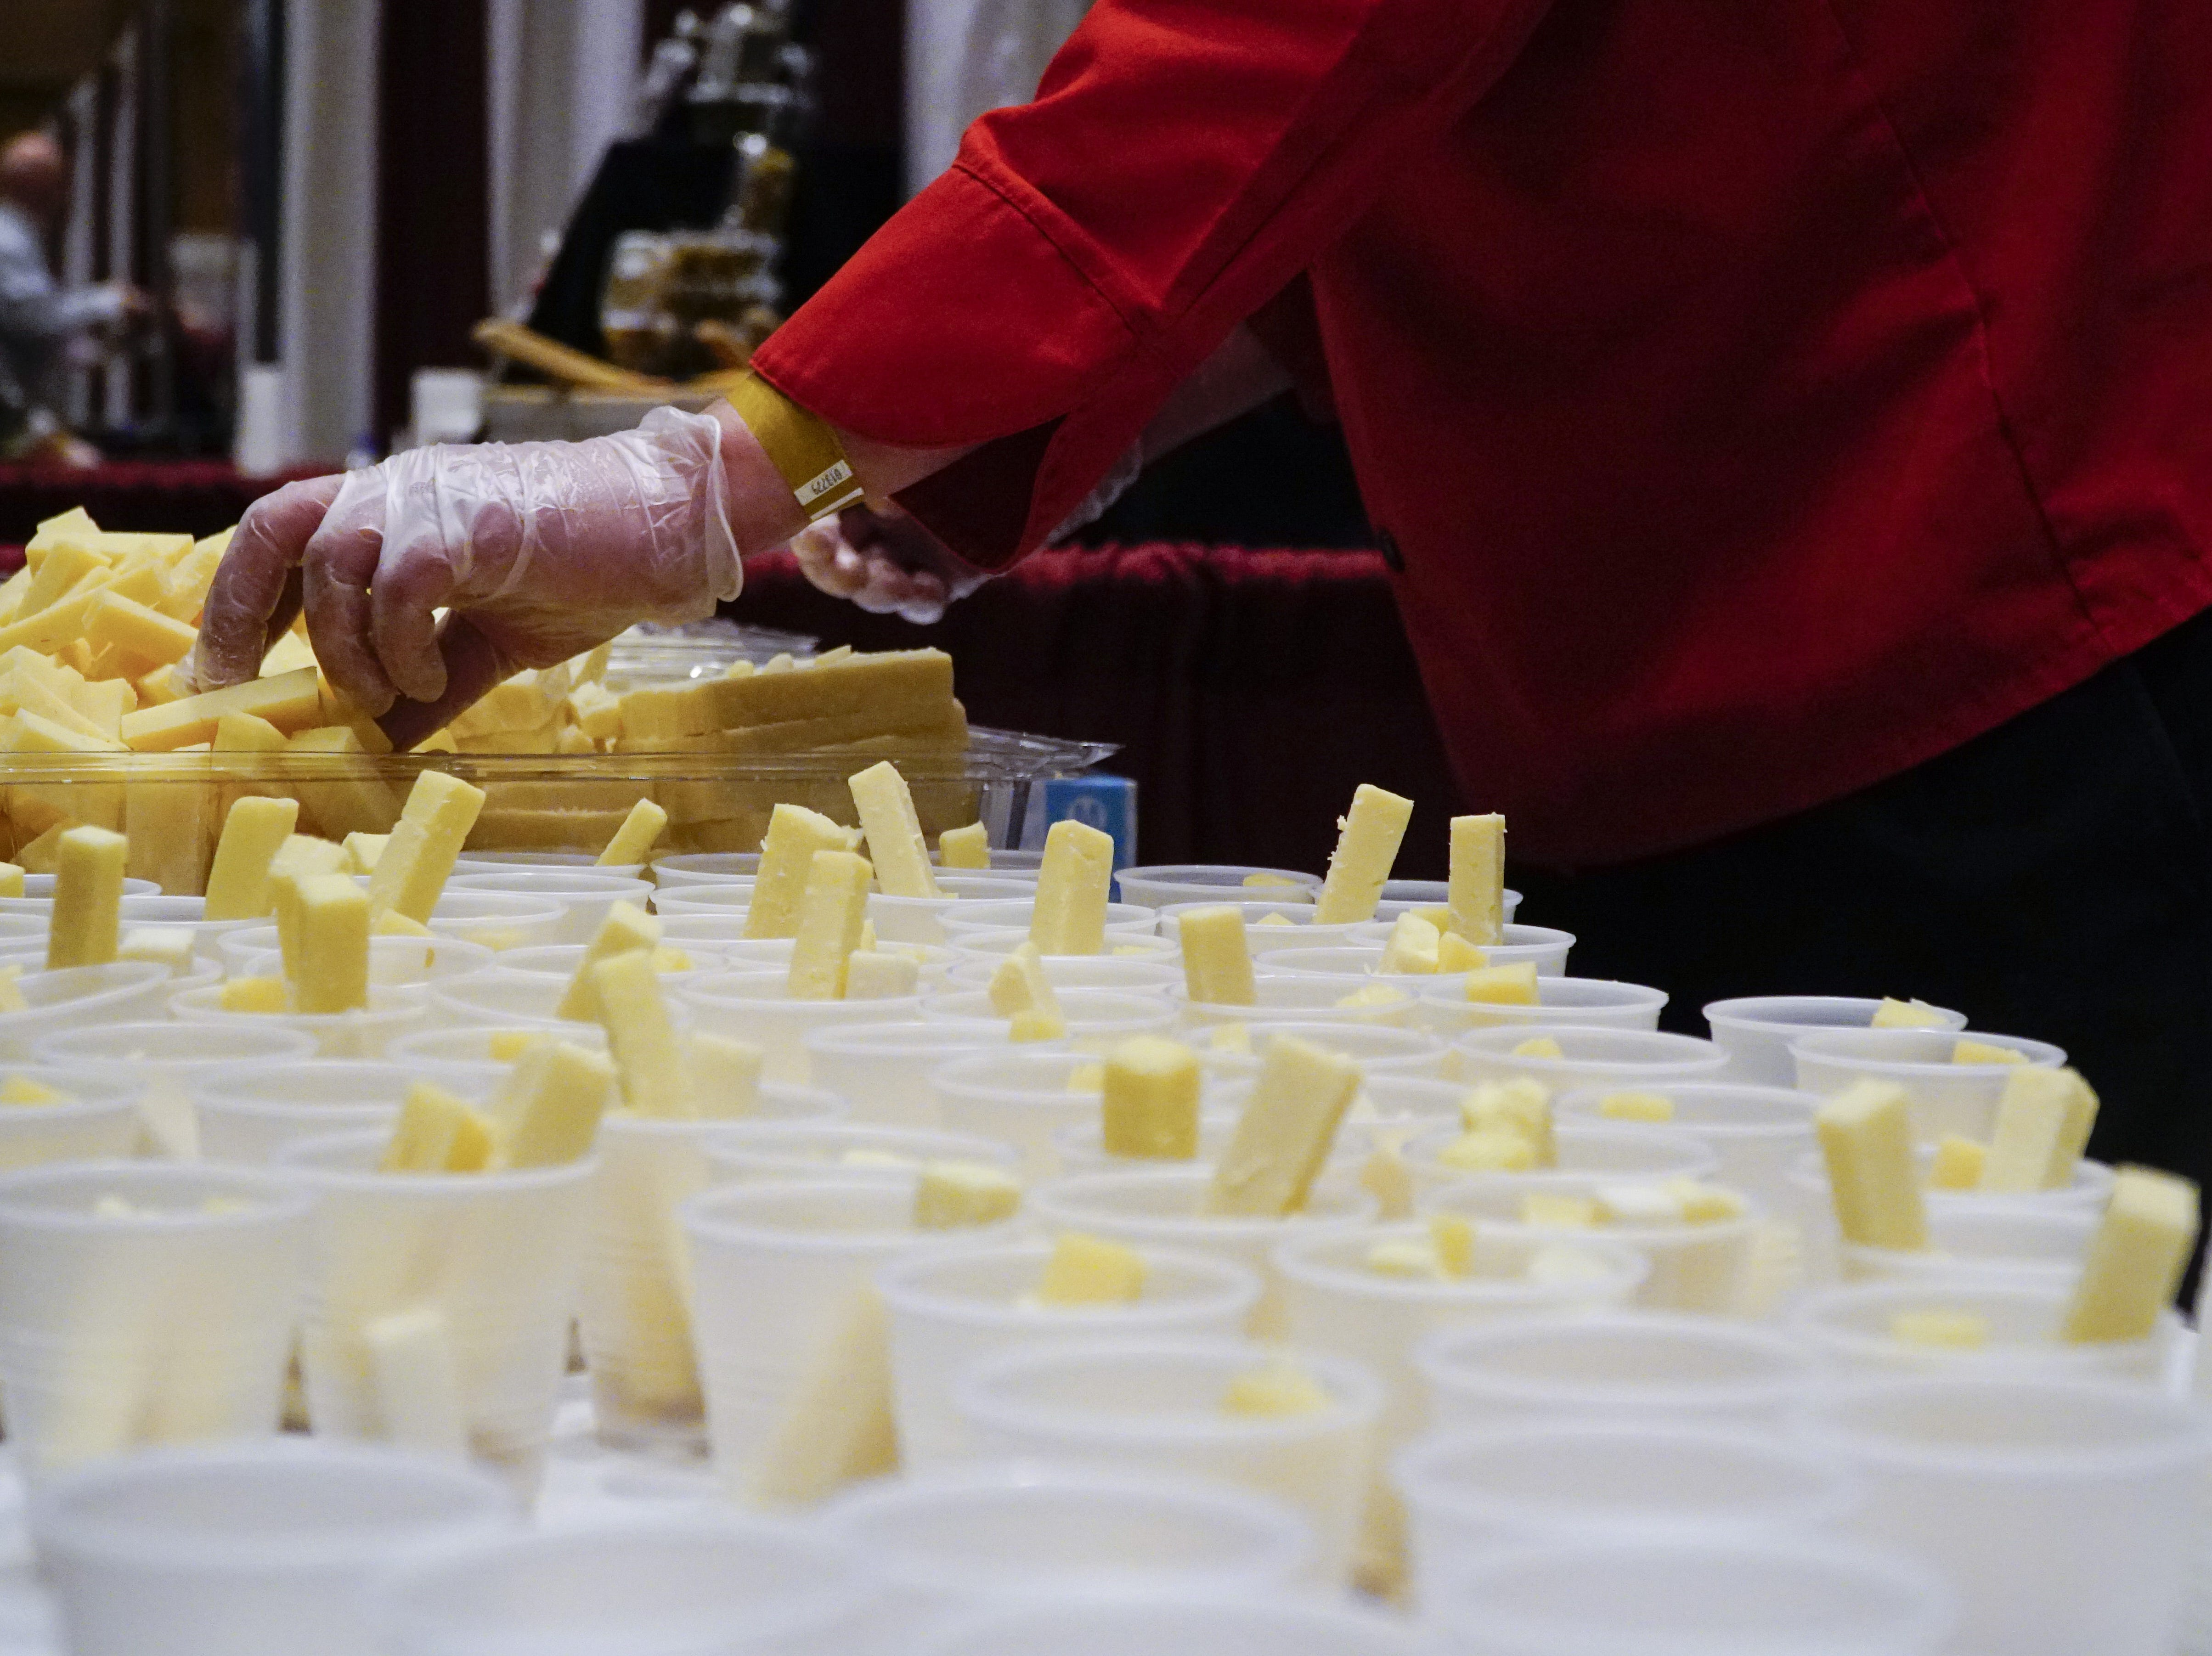 Gouda samples are prepped at Murray's Cheese at The Cincinnati International Wine Festival, March 9, 2019.